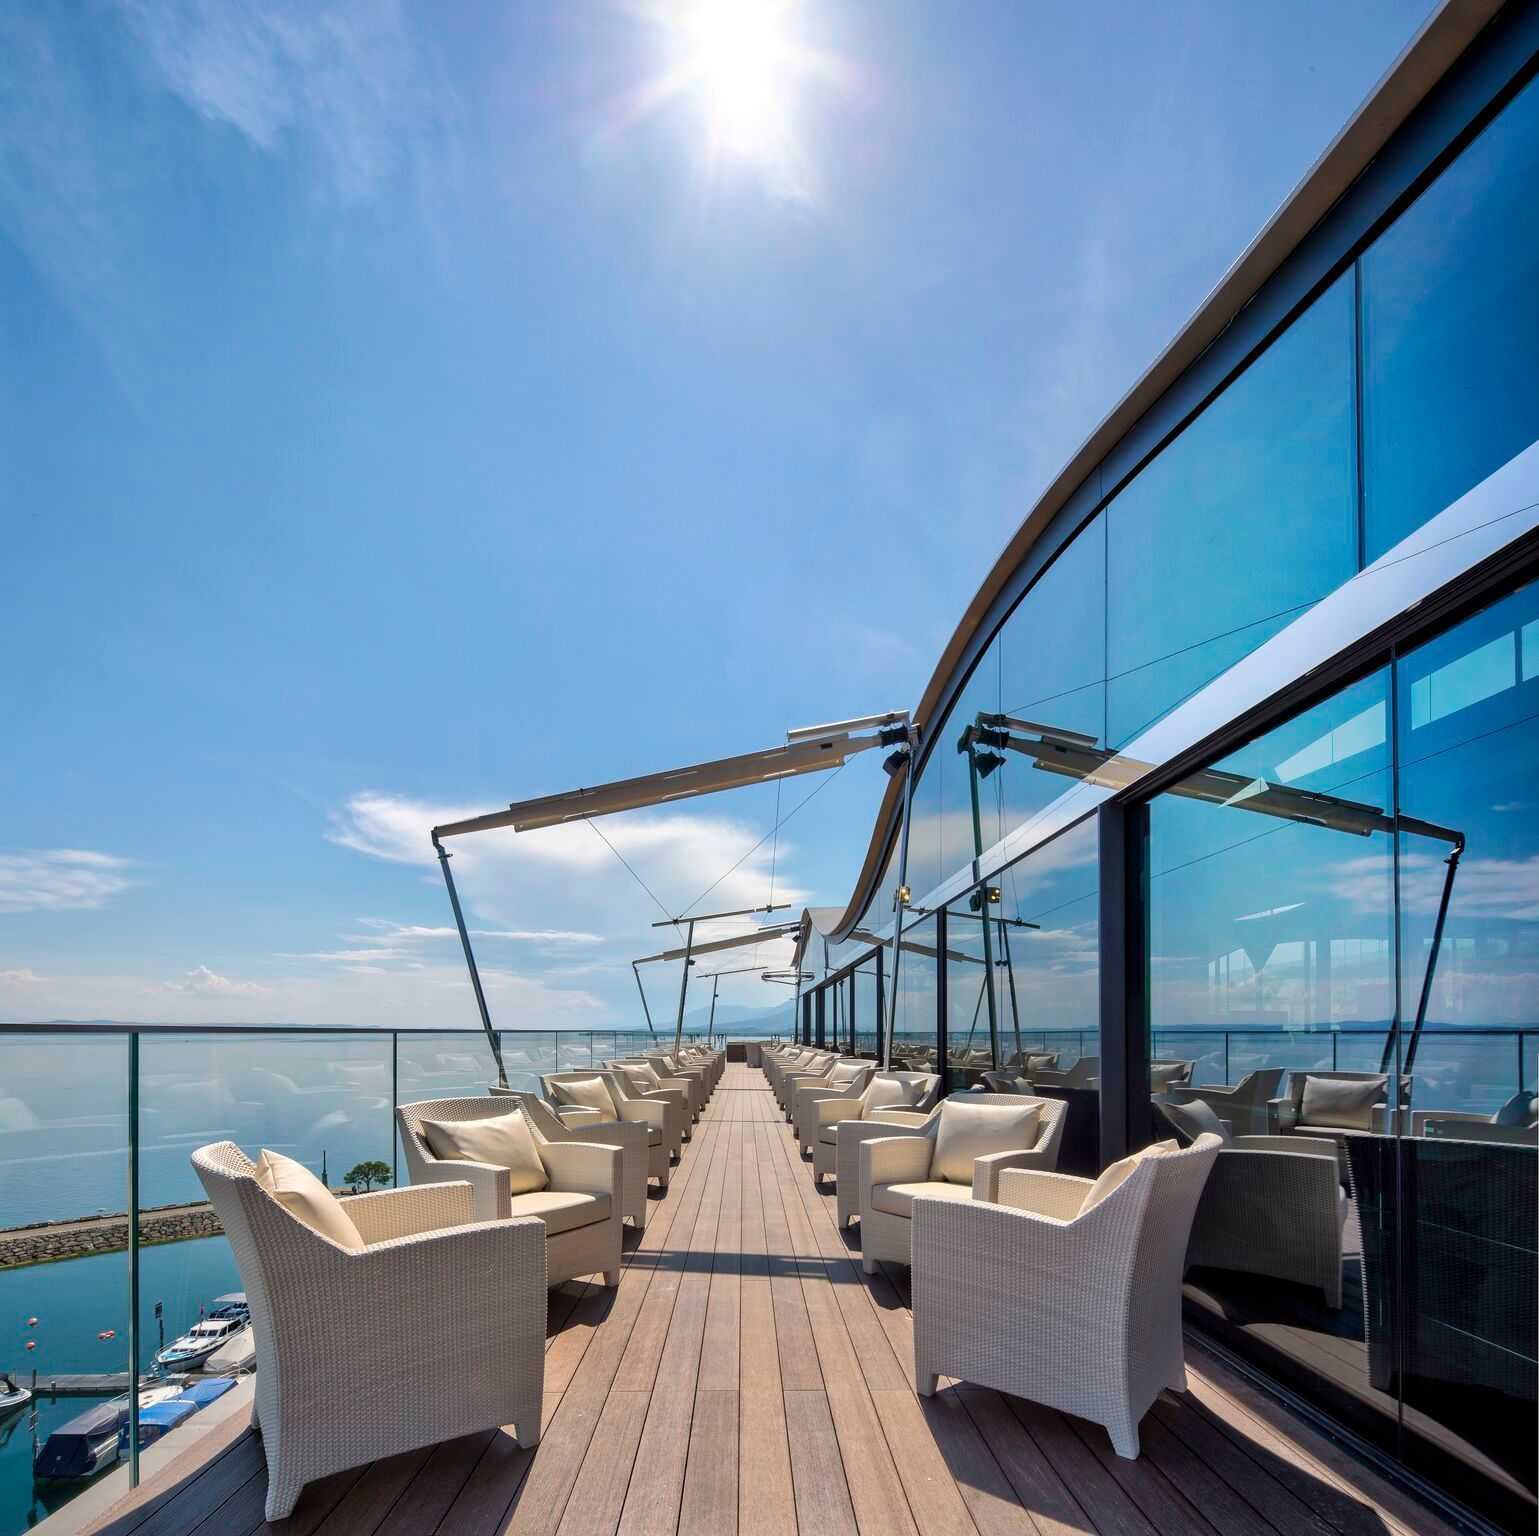 Architect Pierre Studer chose SageGlass to preserve the beautiful view year-round smart glass tints automatically in response to outdoor conditions to provide heat and glare control while maintaining unobstructed views to the outdoors.  A system of sliding doors that incorporate SageGlass was designed with Vitrocsa SA to allow access to the terrace overlooking the lake.